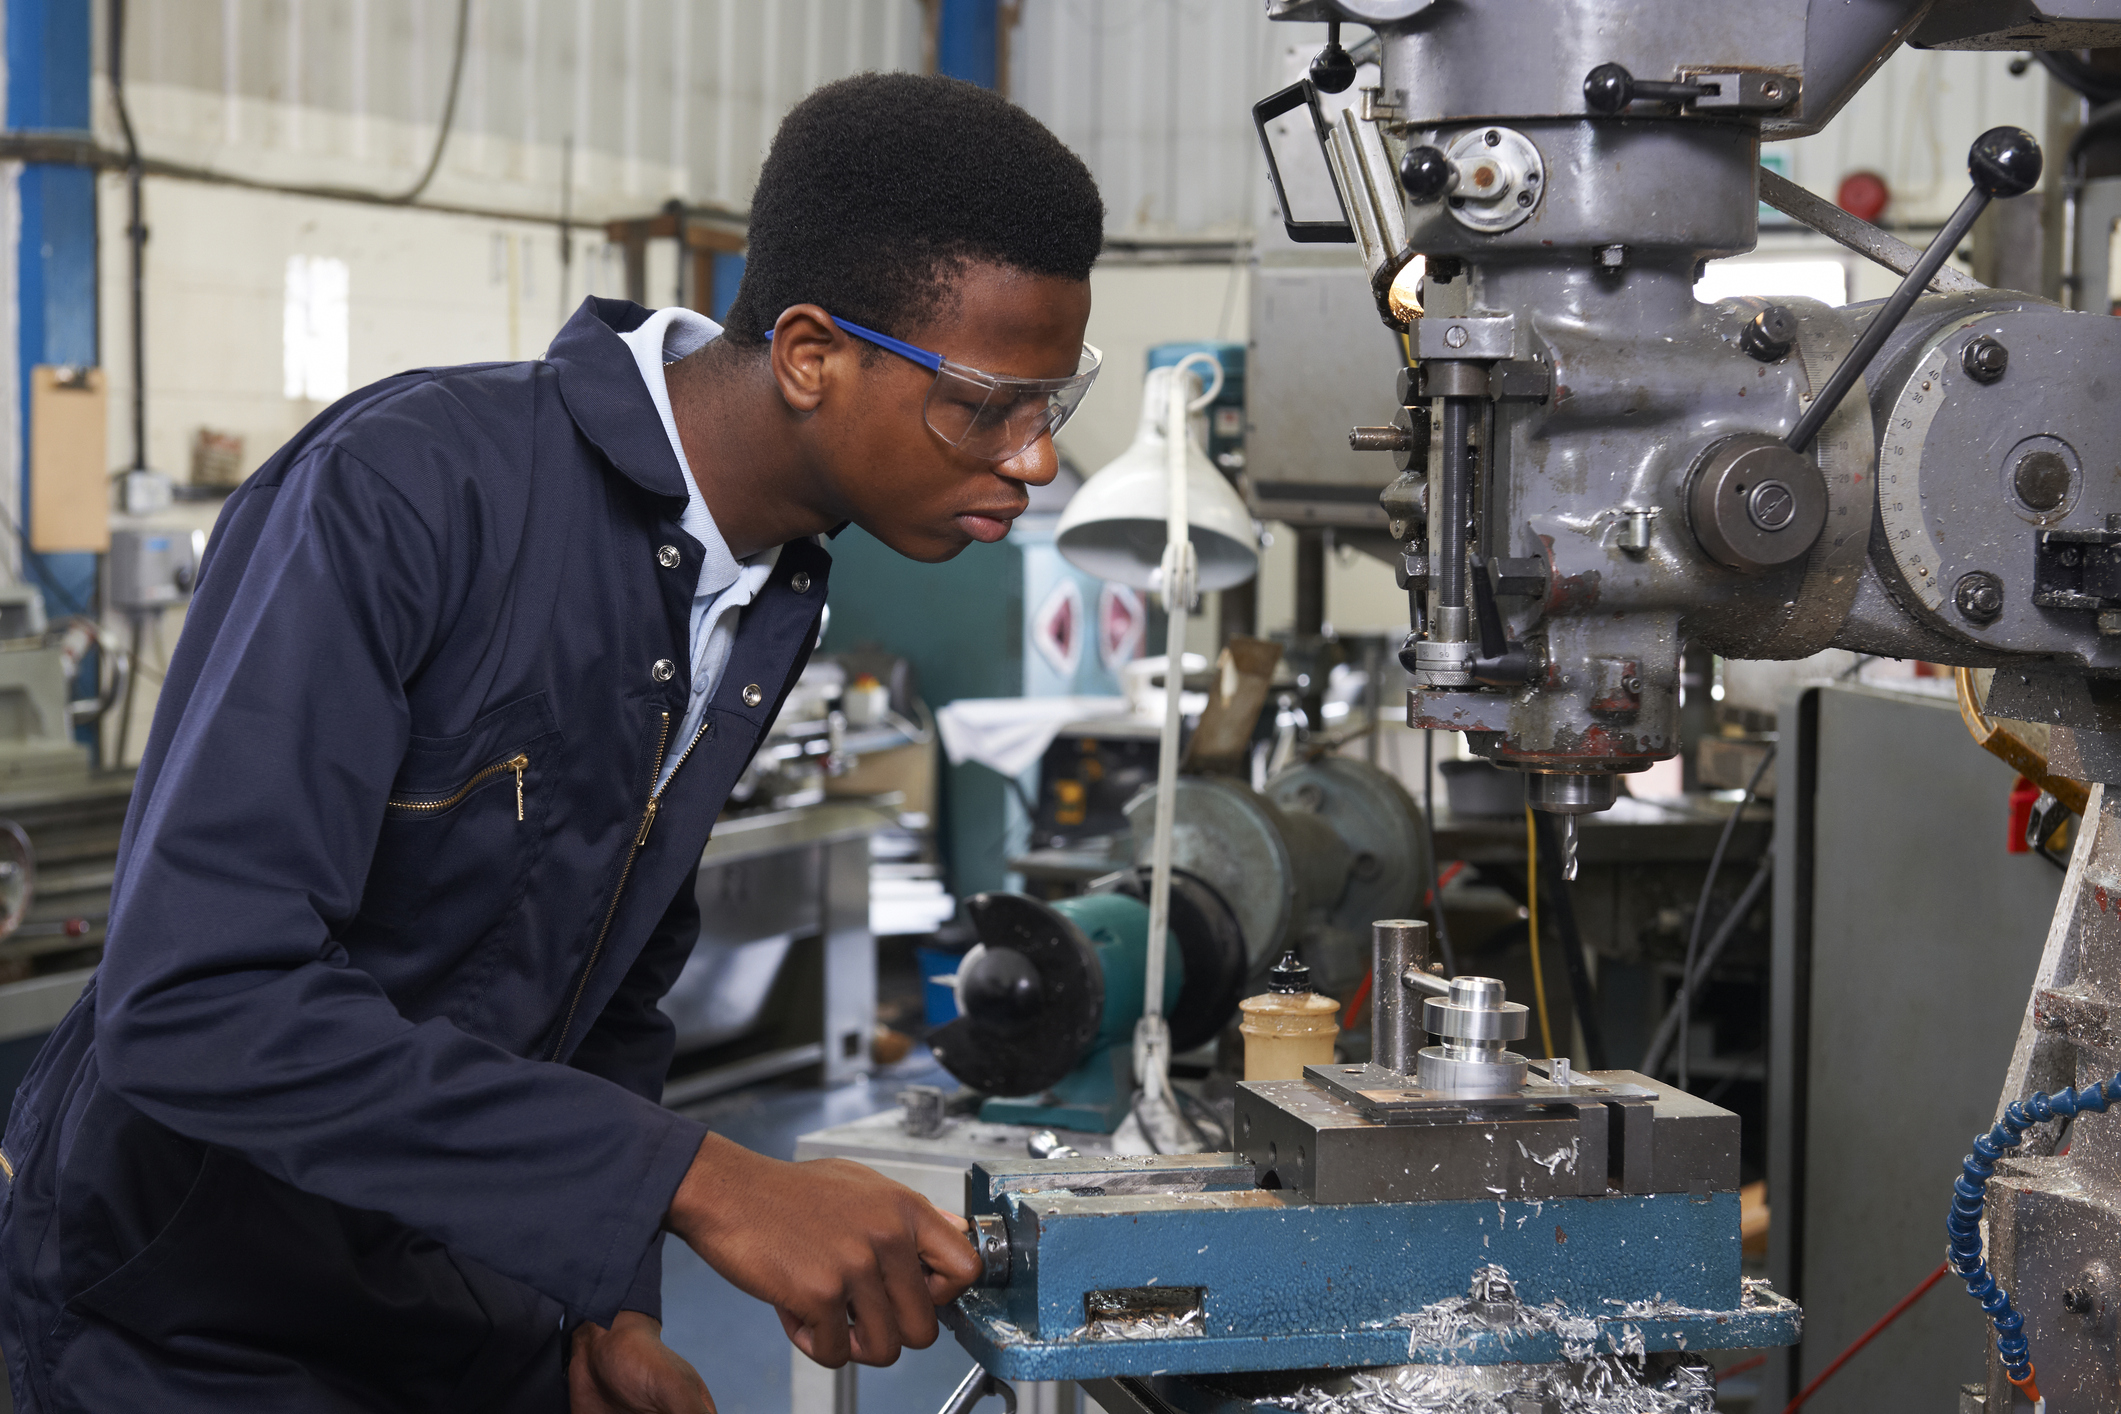 Photograph of Male Apprentice Engineer Working On Drill In Factory